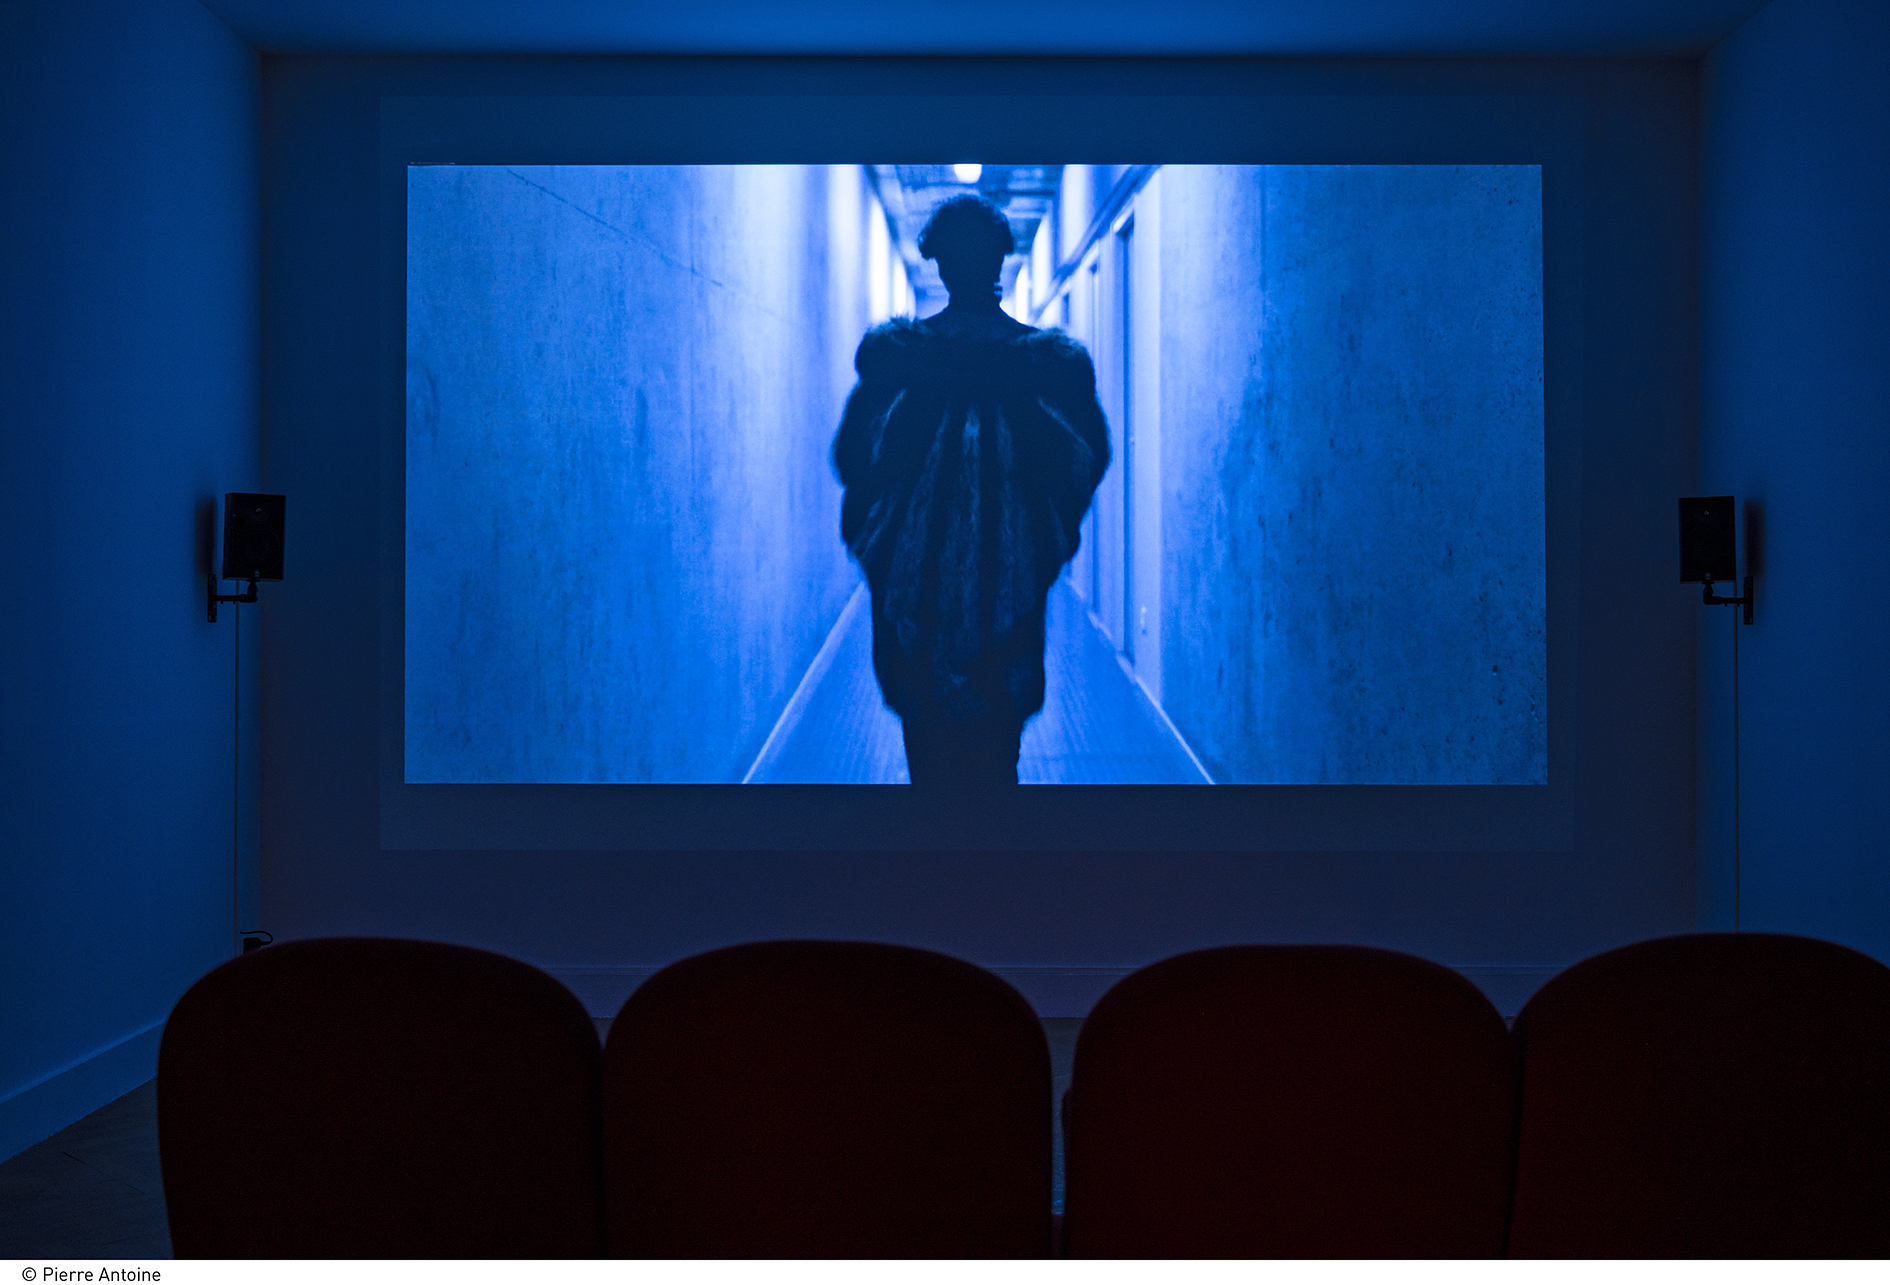 Tarek Lakhrissi  Out of the Blue - Part I, 2019 Production La Galerie, centre d'art contemporain de Noisy-le-Sec  Avec le soutien du Département de la Seine-Saint-Denis Courtesy de l'artiste Photo: Pierre Antoine